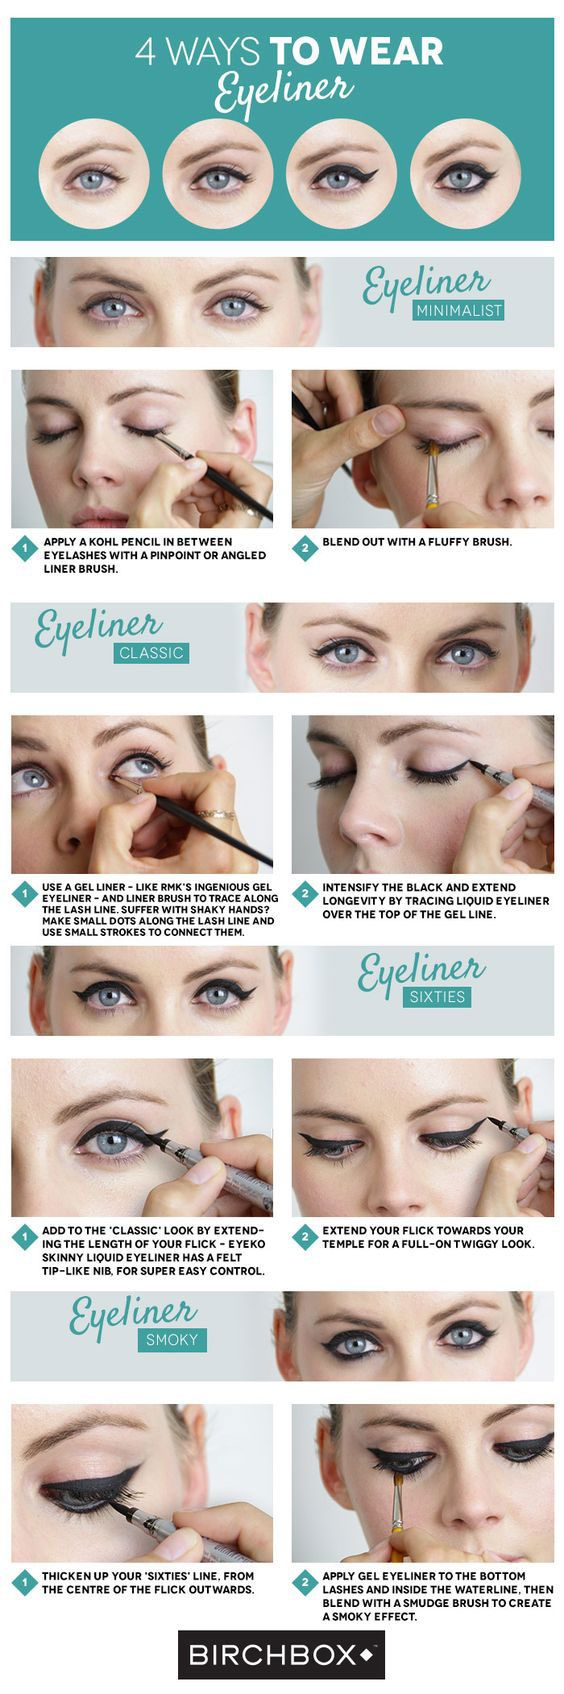 Between Pinterest, the popularity of beauty bloggers, and the amount of makeup apps out there that can make one look flawless in seconds, it's easy to forget how many makeup beginners there are. For every girl who can post an Instagram video of herself applying a gorgeous cat-eye in mere seconds, there are 10 girls out there who are struggling to even apply just a straight line of regular eyeliner.